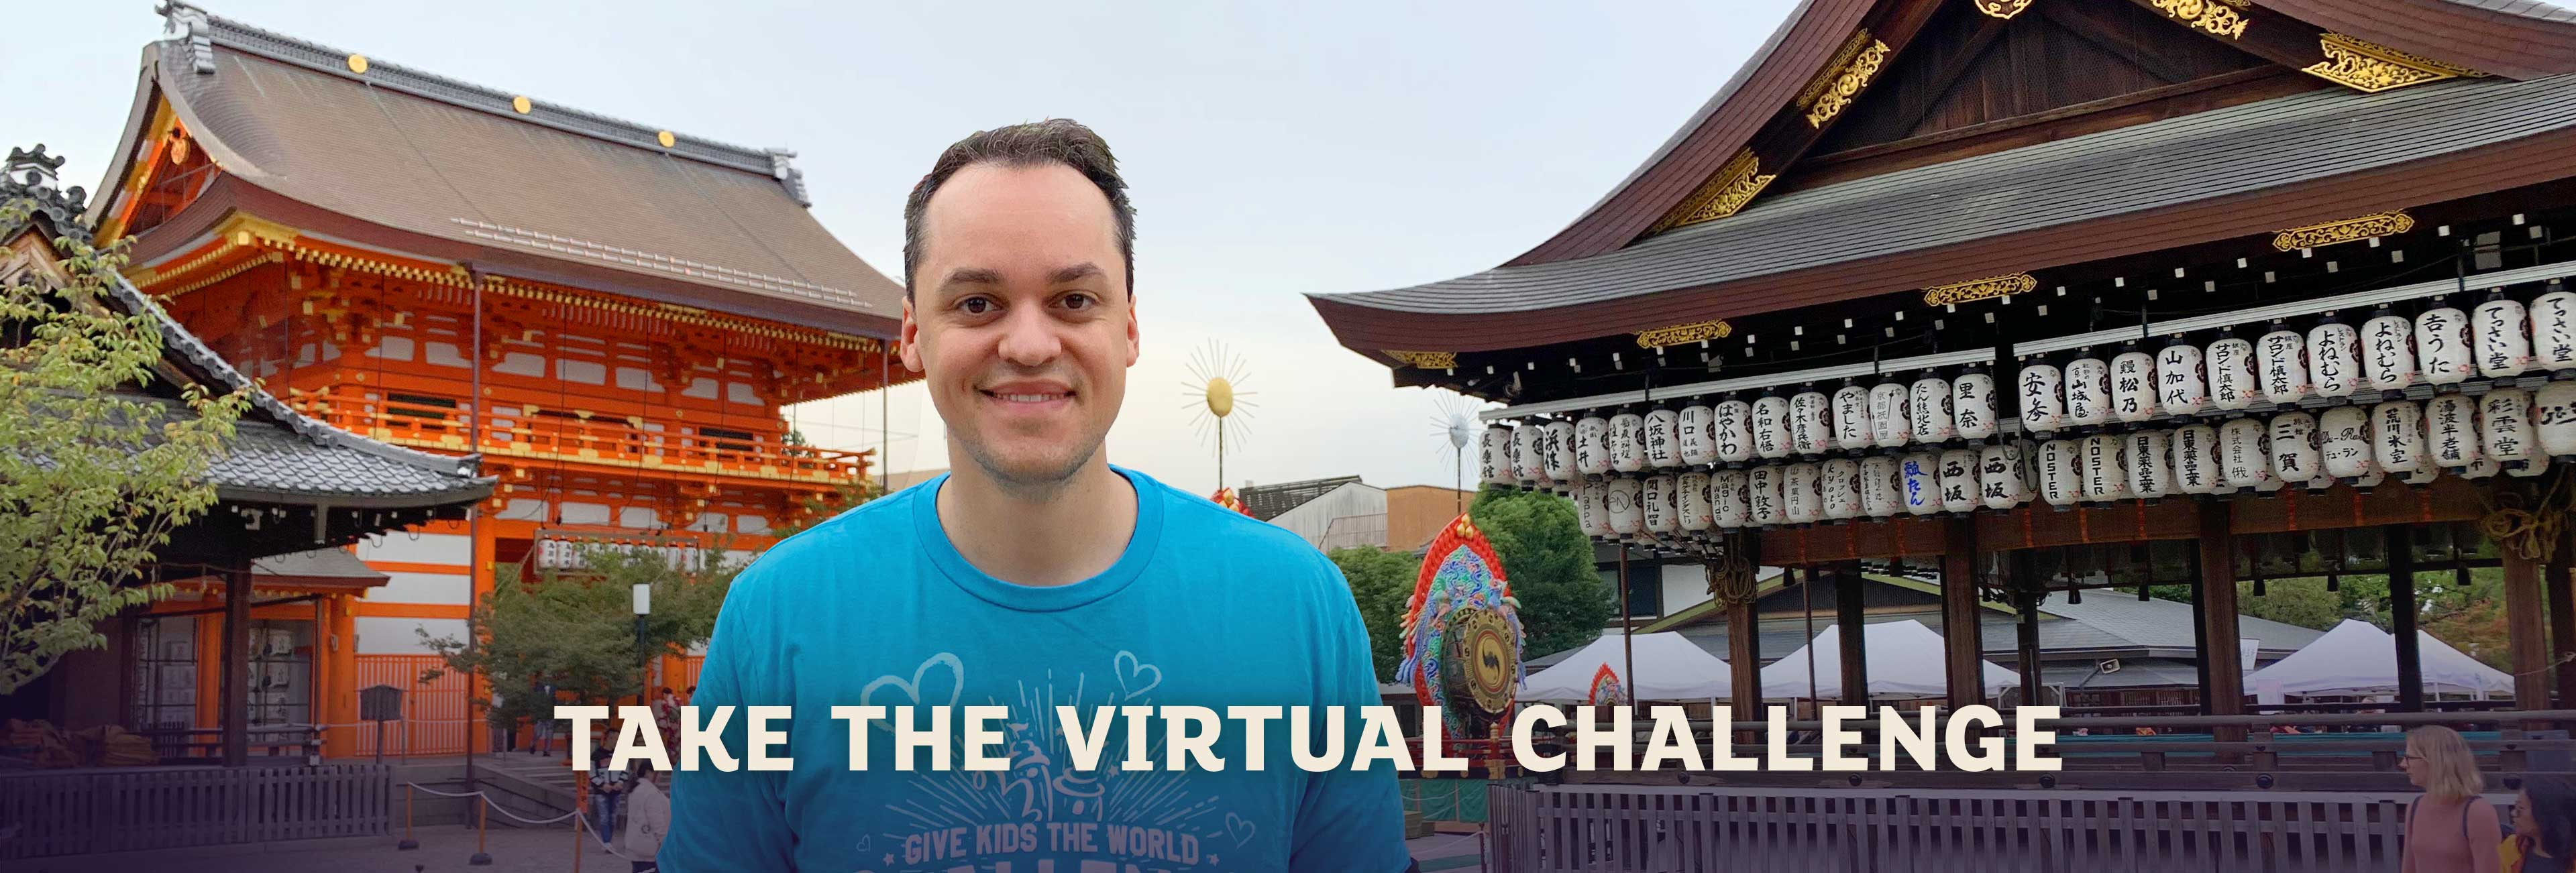 Take the Virtual Challenge